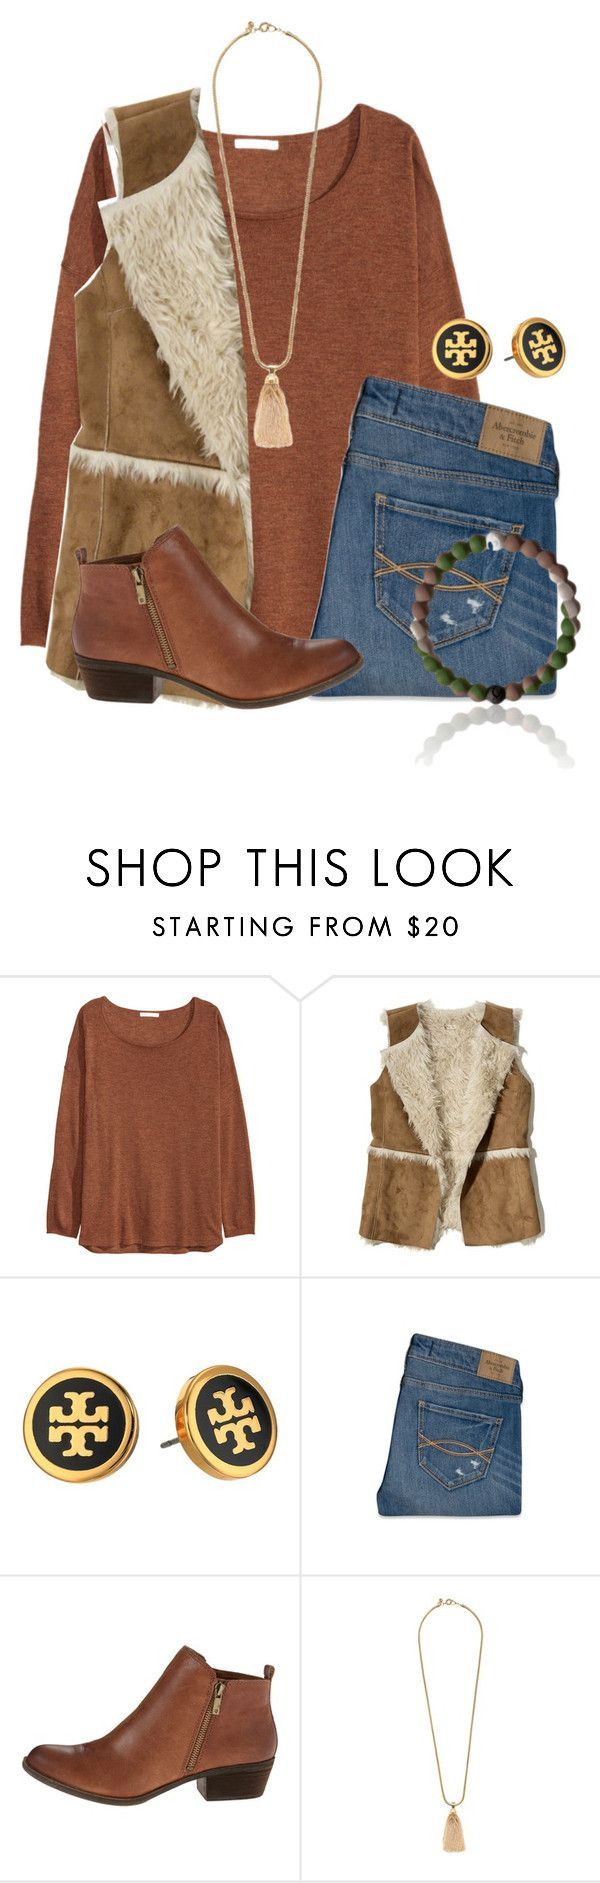 """"" by flroasburn ❤ liked on Polyvore featuring H&M, Hollister Co., Tory Burch, Abercrombie & Fitch, Lucky Brand and J.Crew"